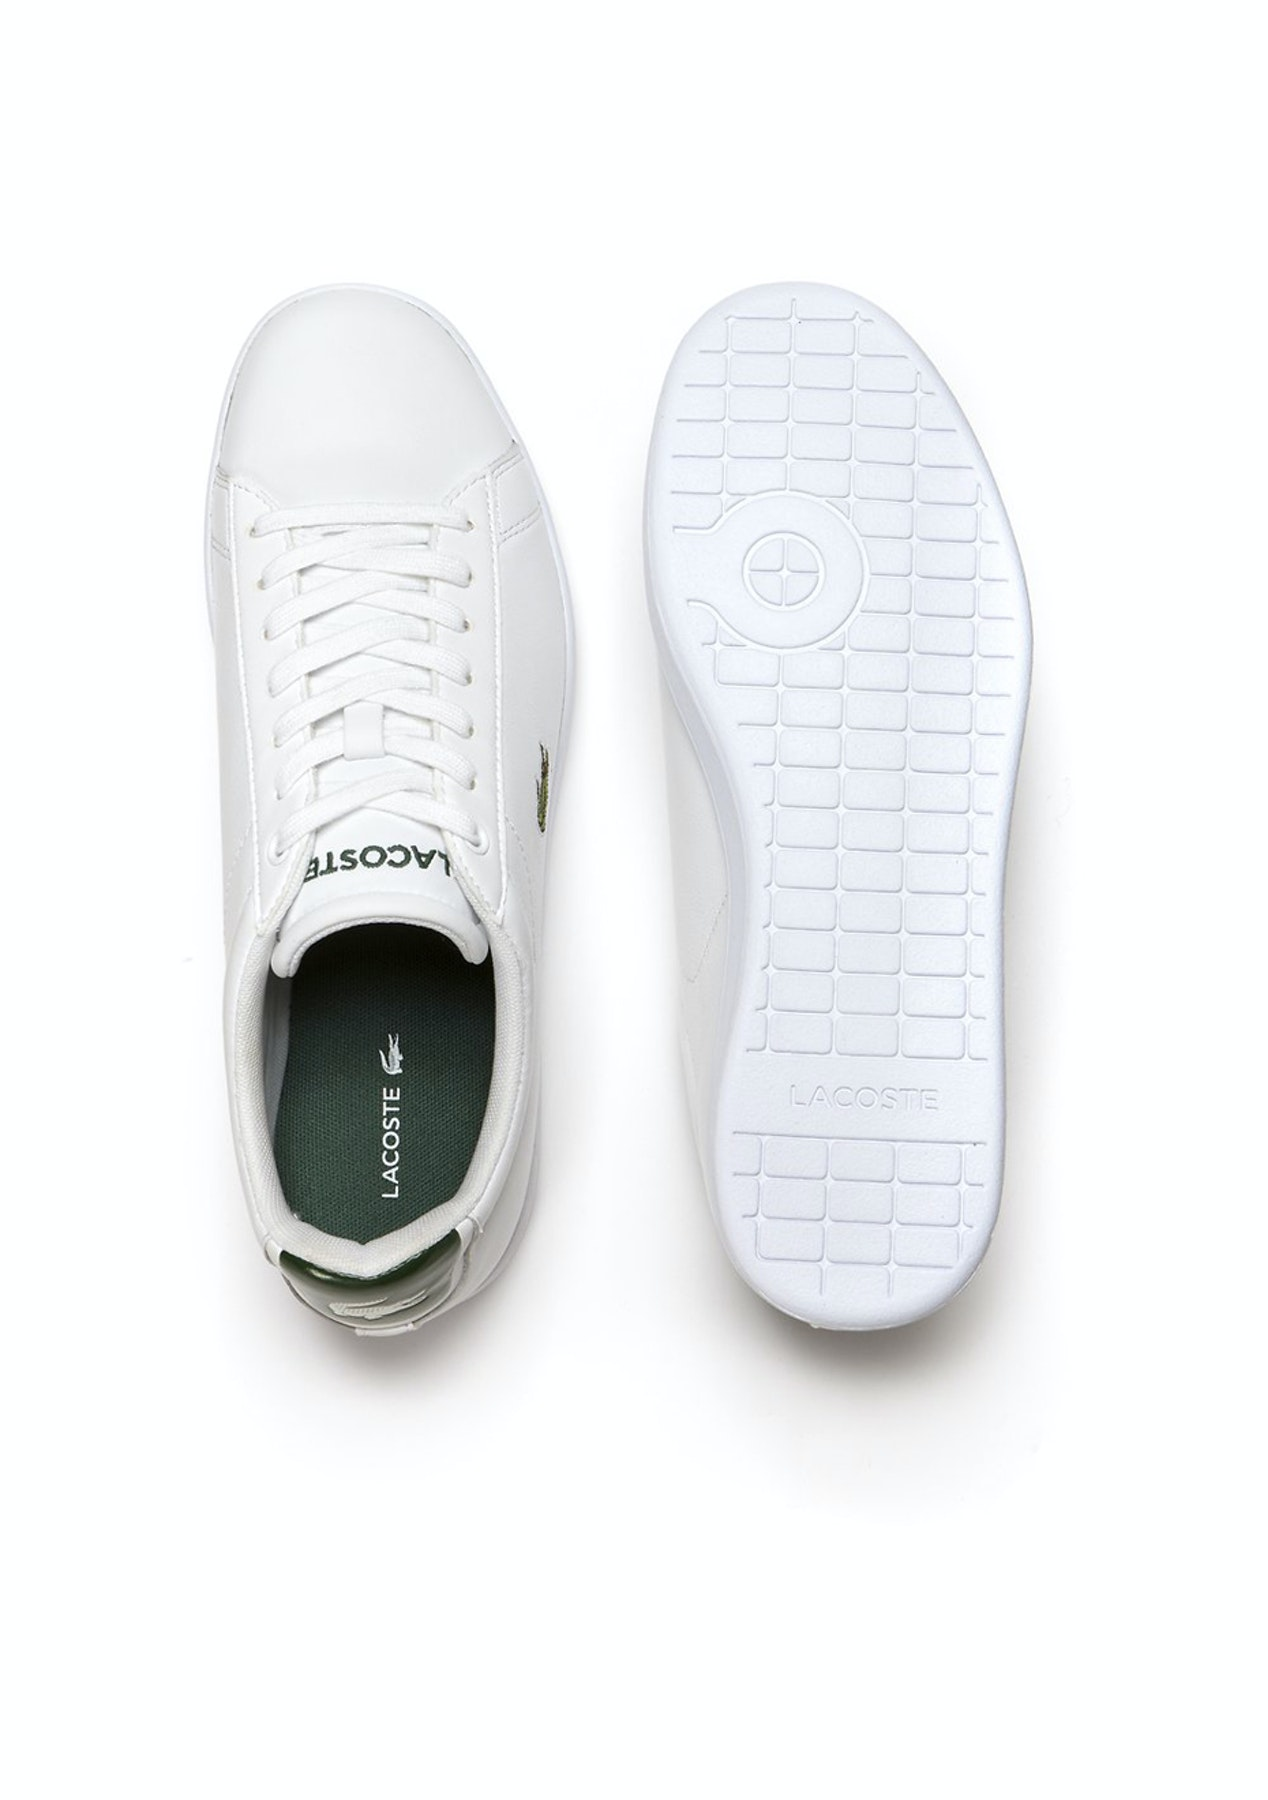 9a1067a74 Mens Lacoste - Carnaby Evo S216 2 Spm - White Dark Green - Under  150 Women s  Shoes Sale - Onceit